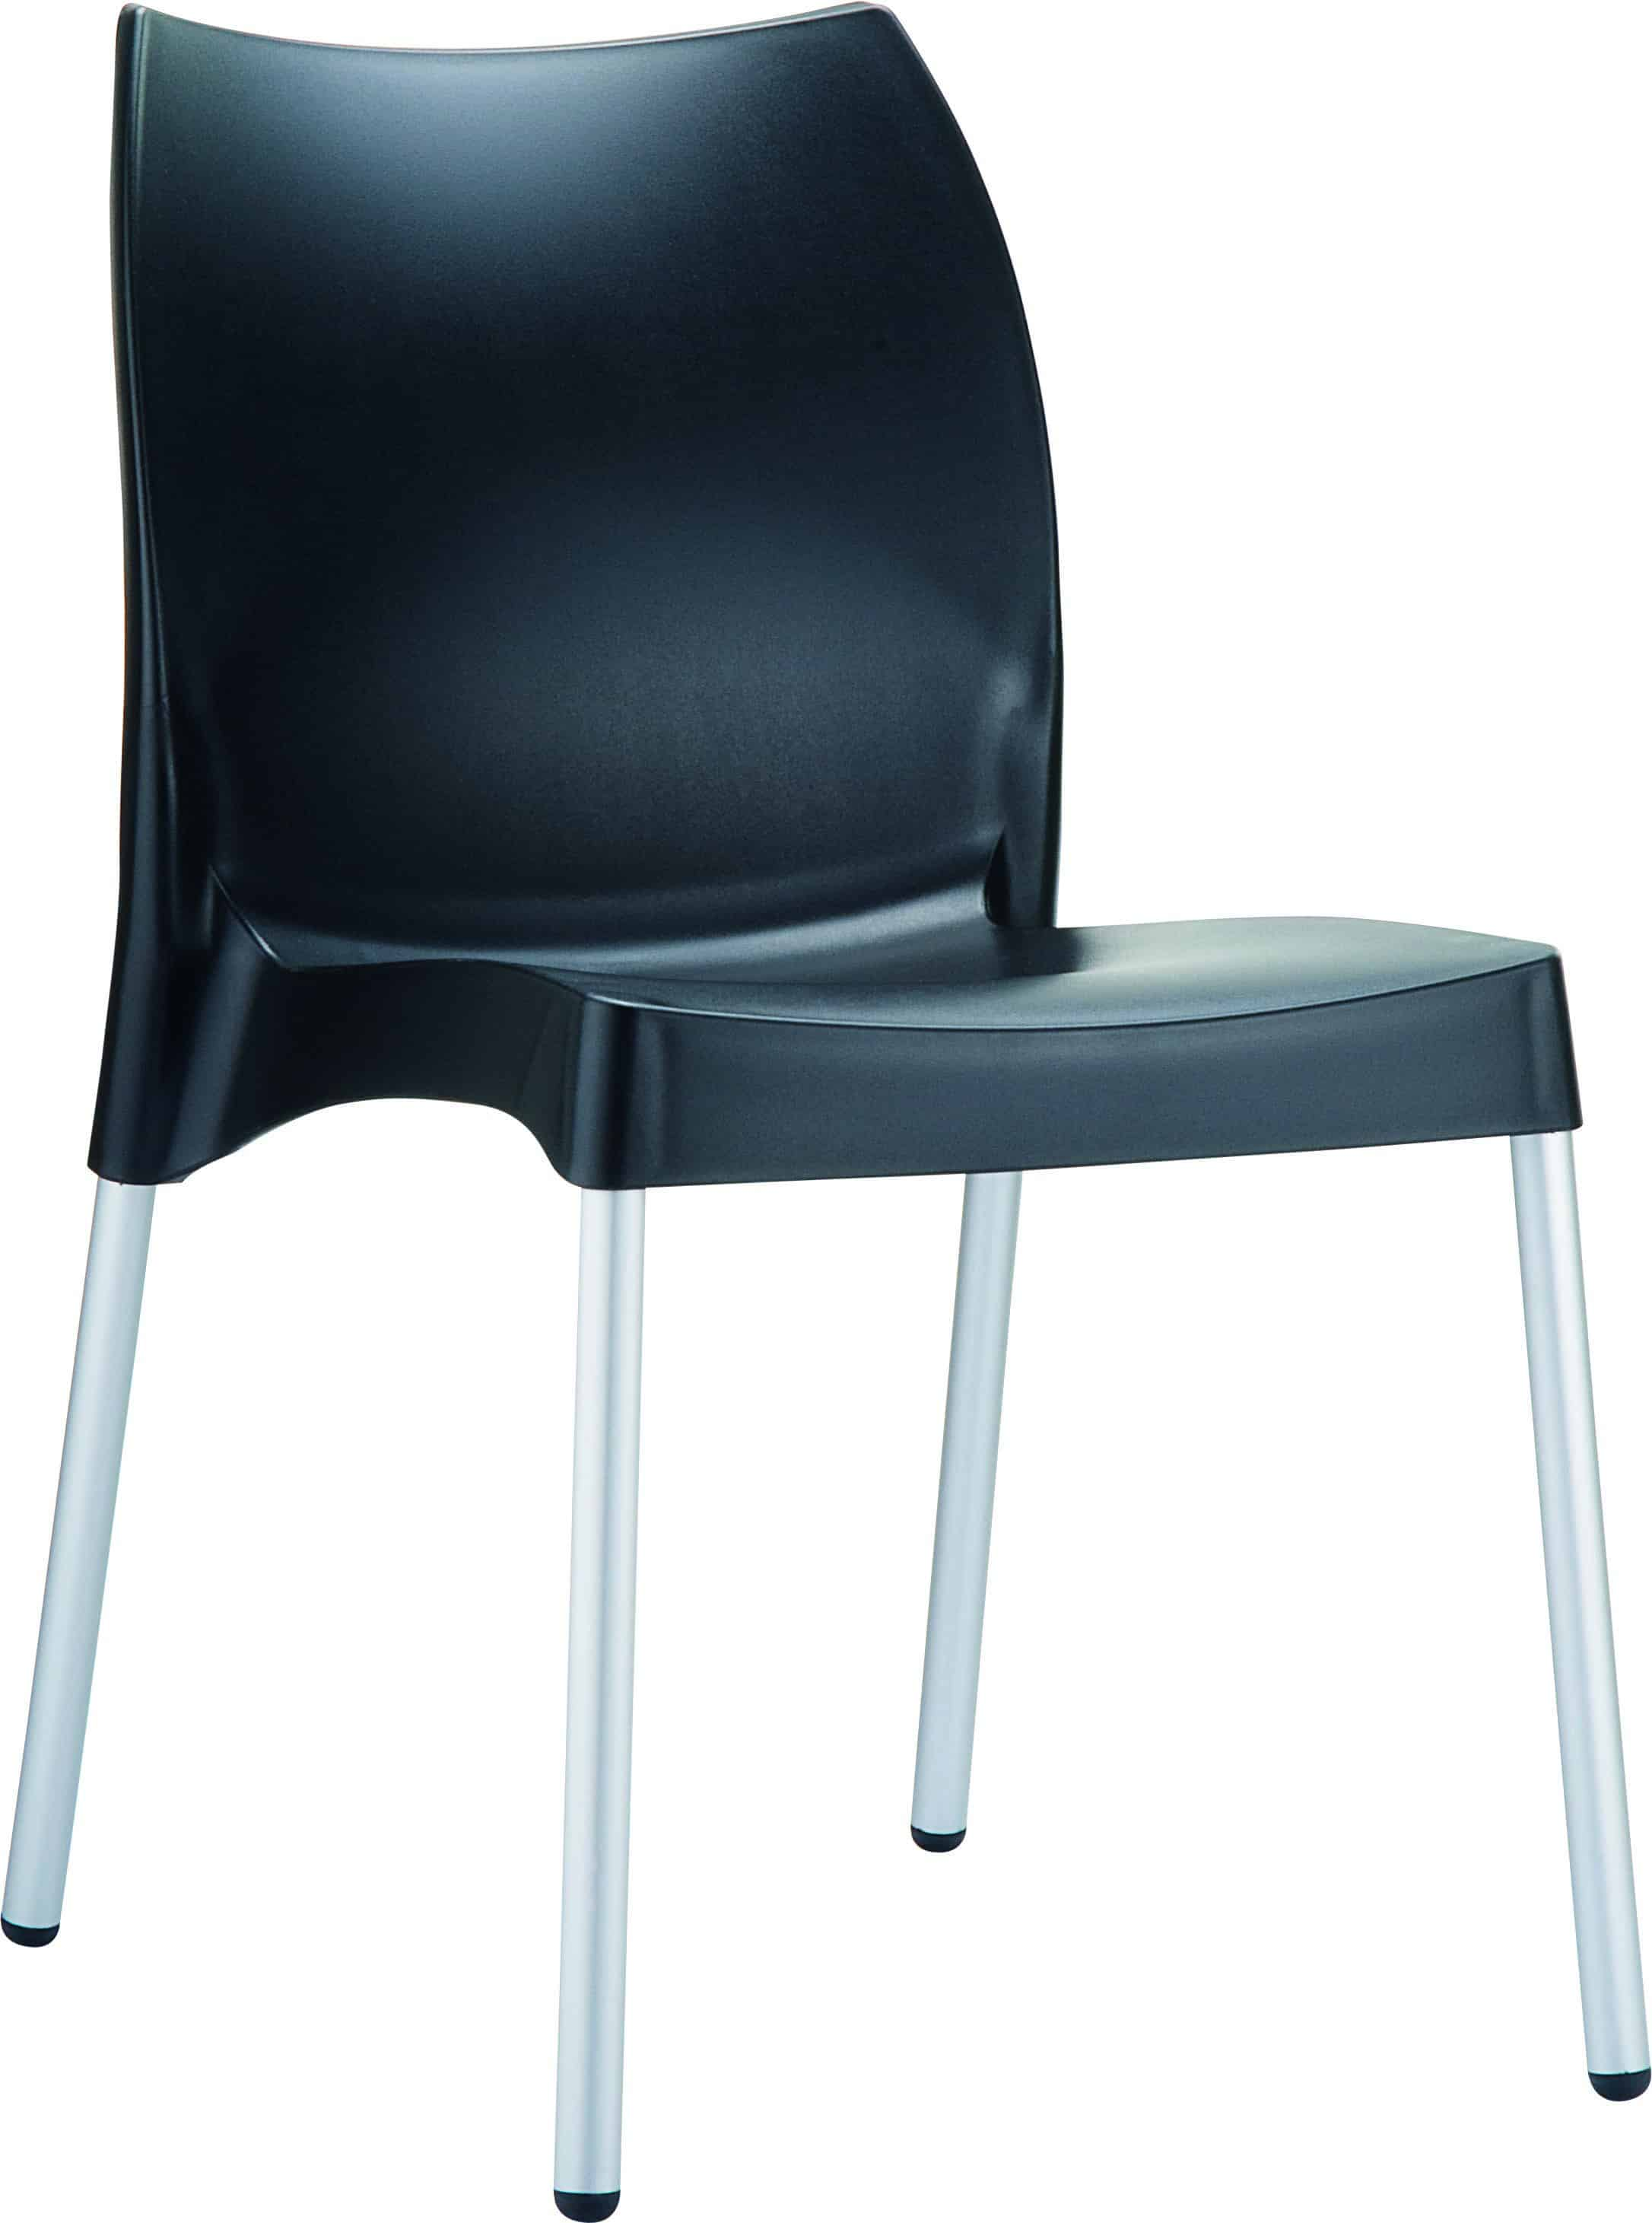 black Astray office chair